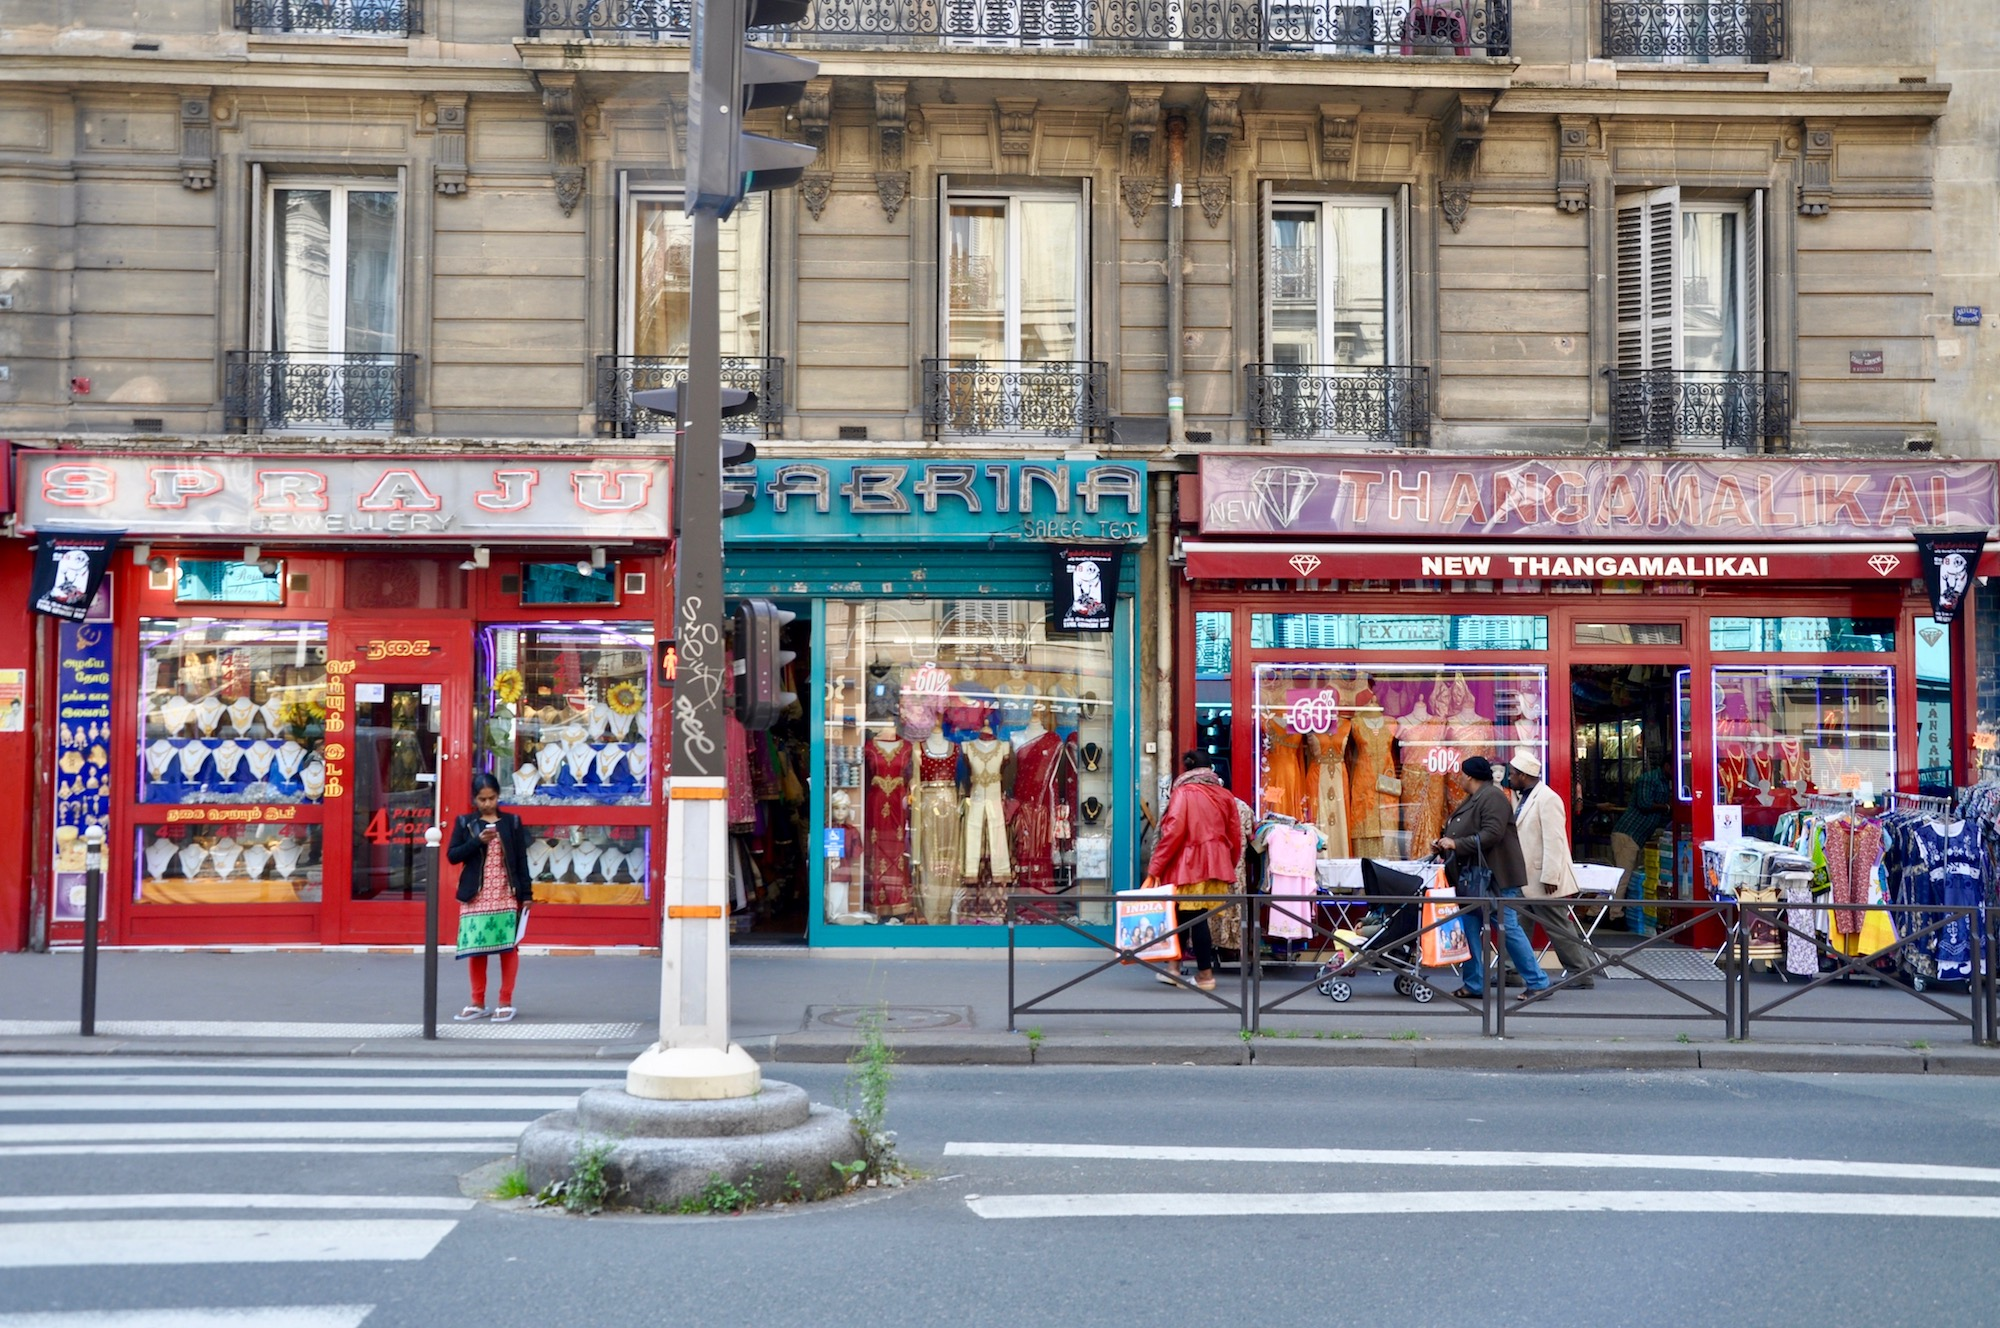 Visit Paris' Little India multicultural neighborhood with its saree shops, restaurants, supermarkets and jewelers.